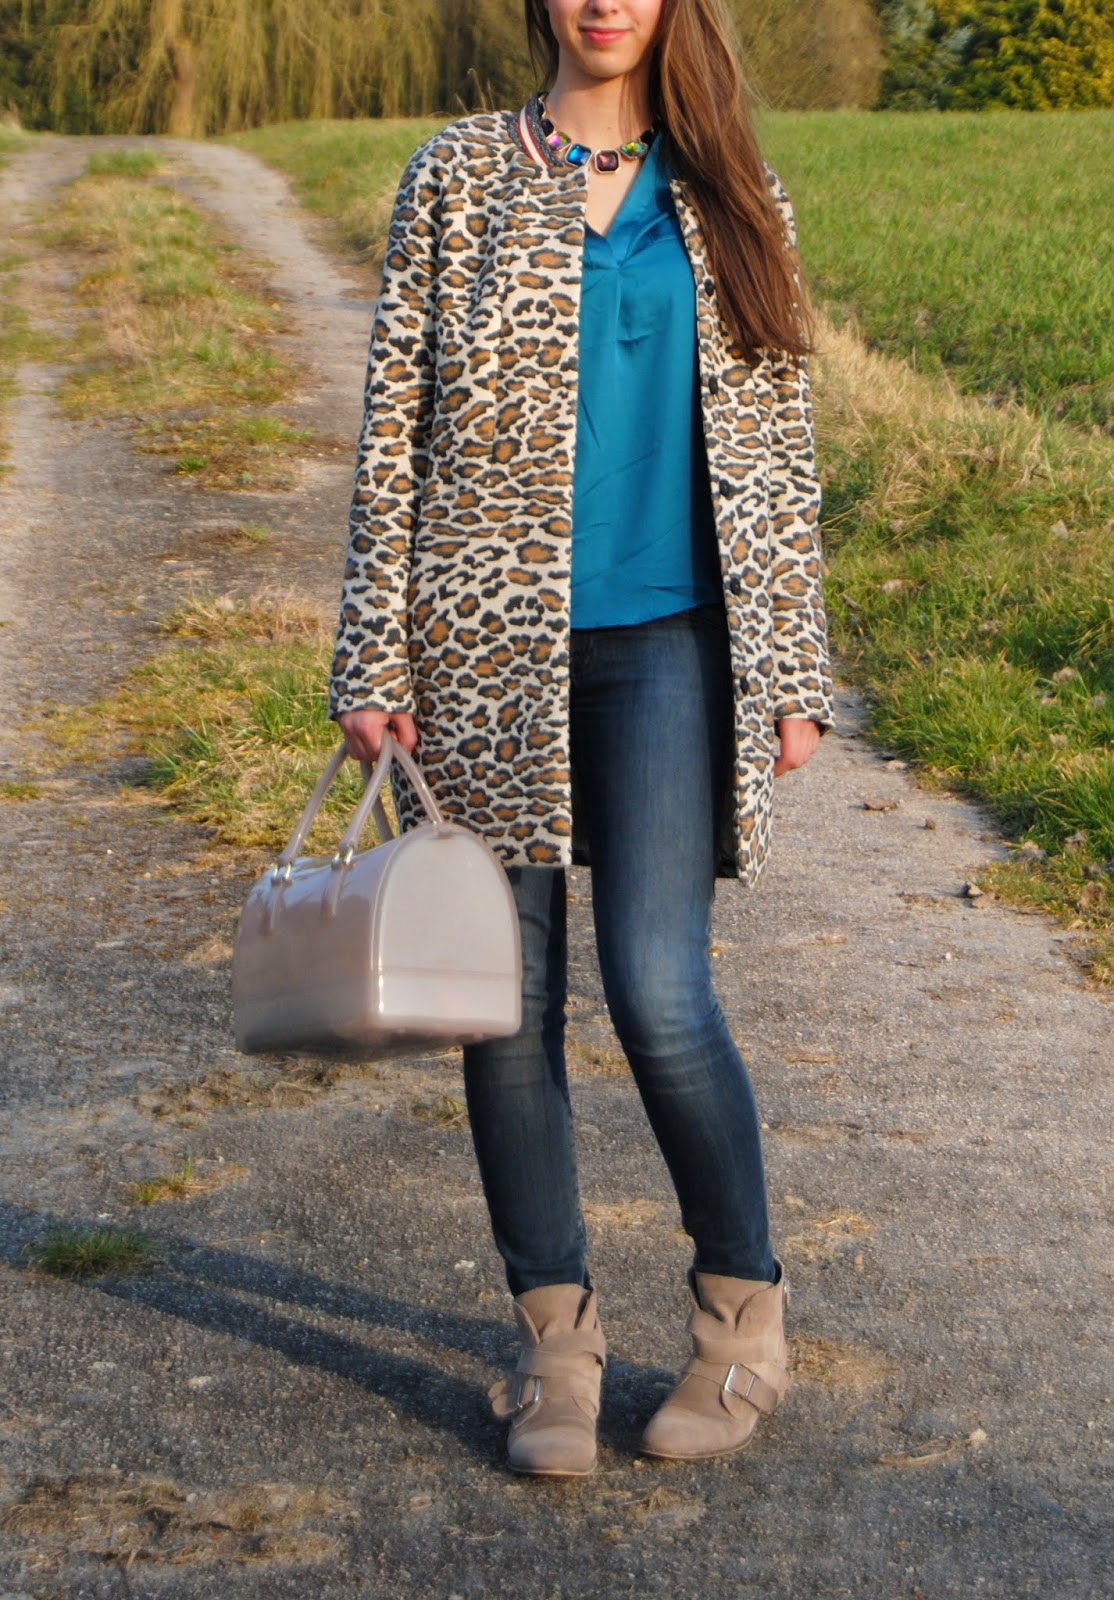 a10e663103bc Arifashionthread - Luxembourg Fashion and Lifestyle Blog  March 2014